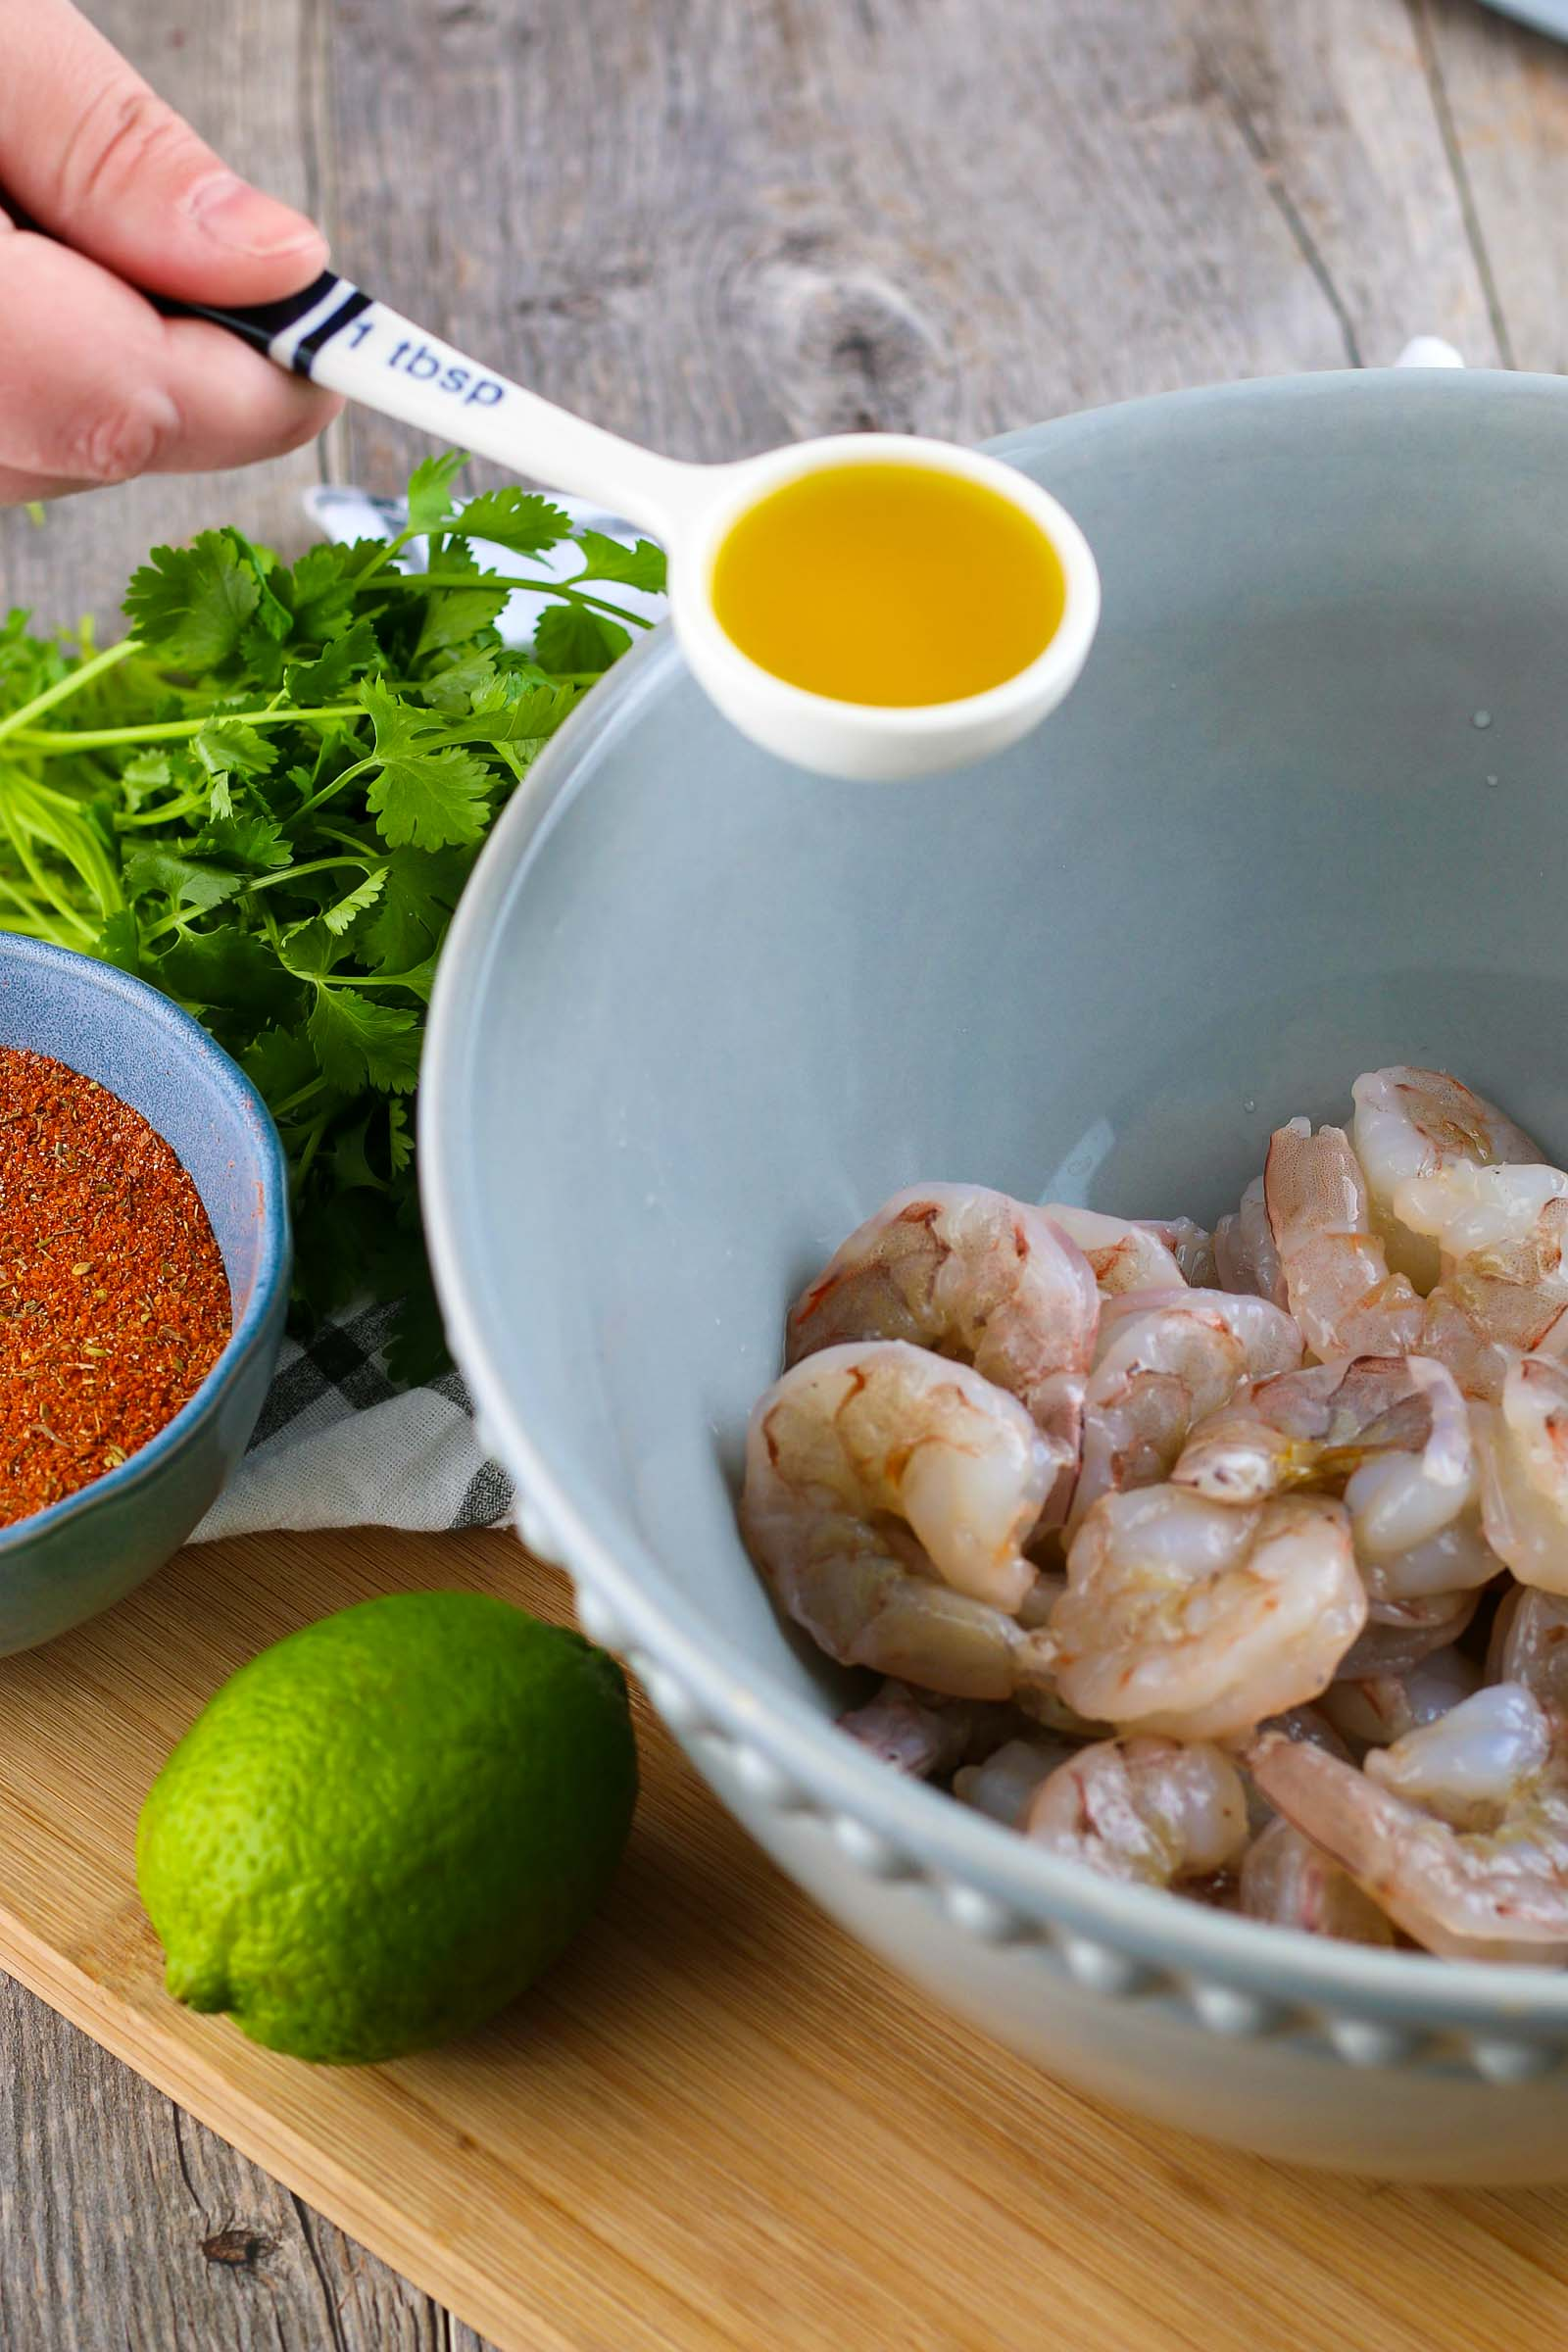 raw shrimp in a blue bowl and a tablespoon of olive oil